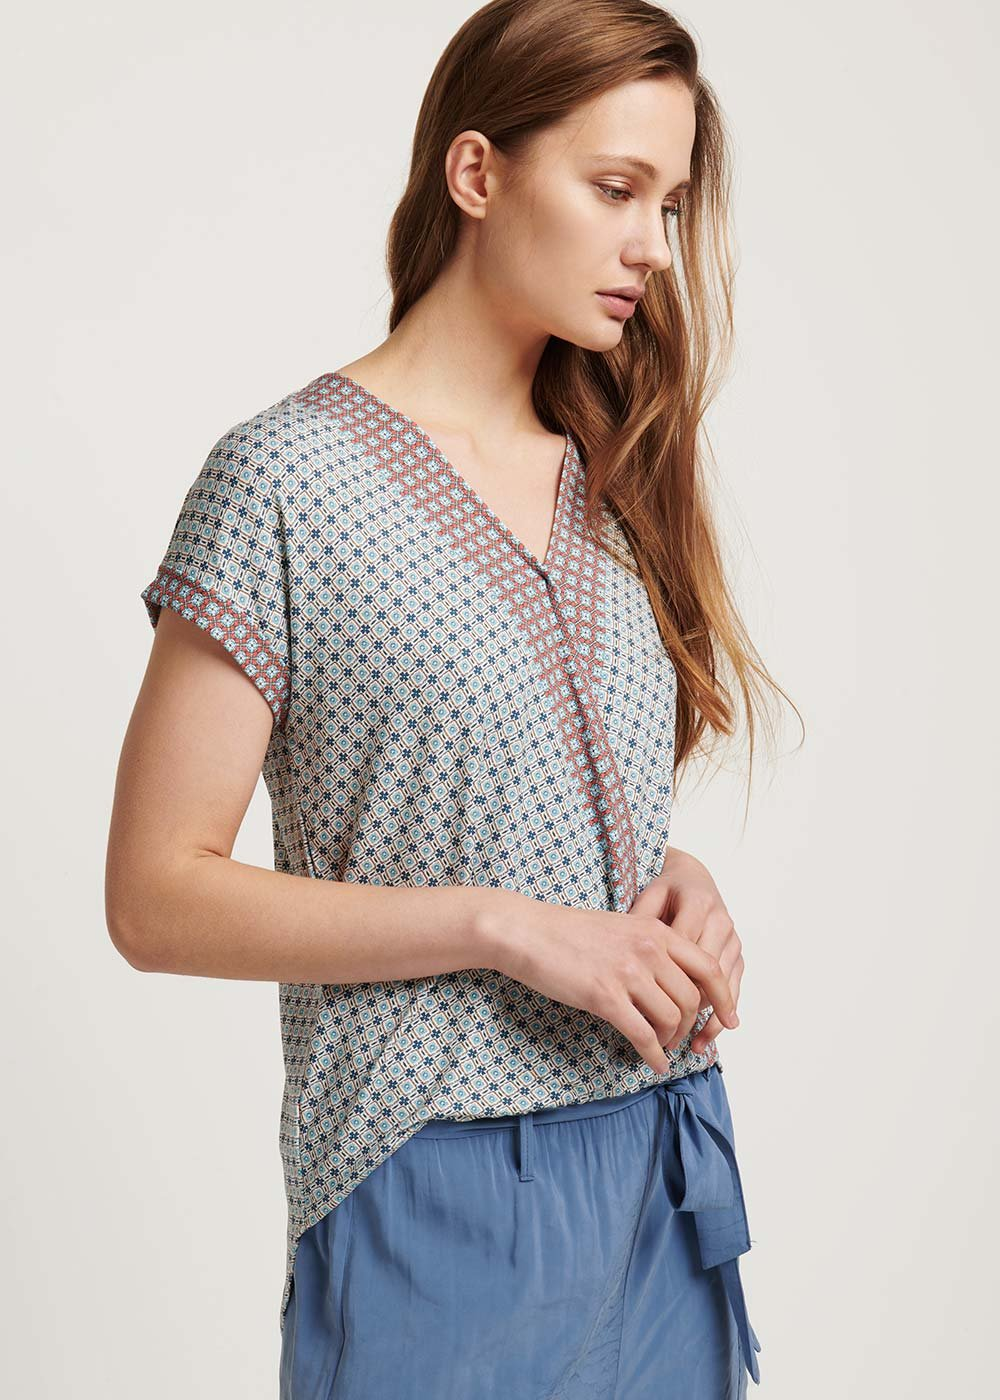 Sira patterned T-shirt with crisscross neck - Avion / Coccio / Fantasia - Woman